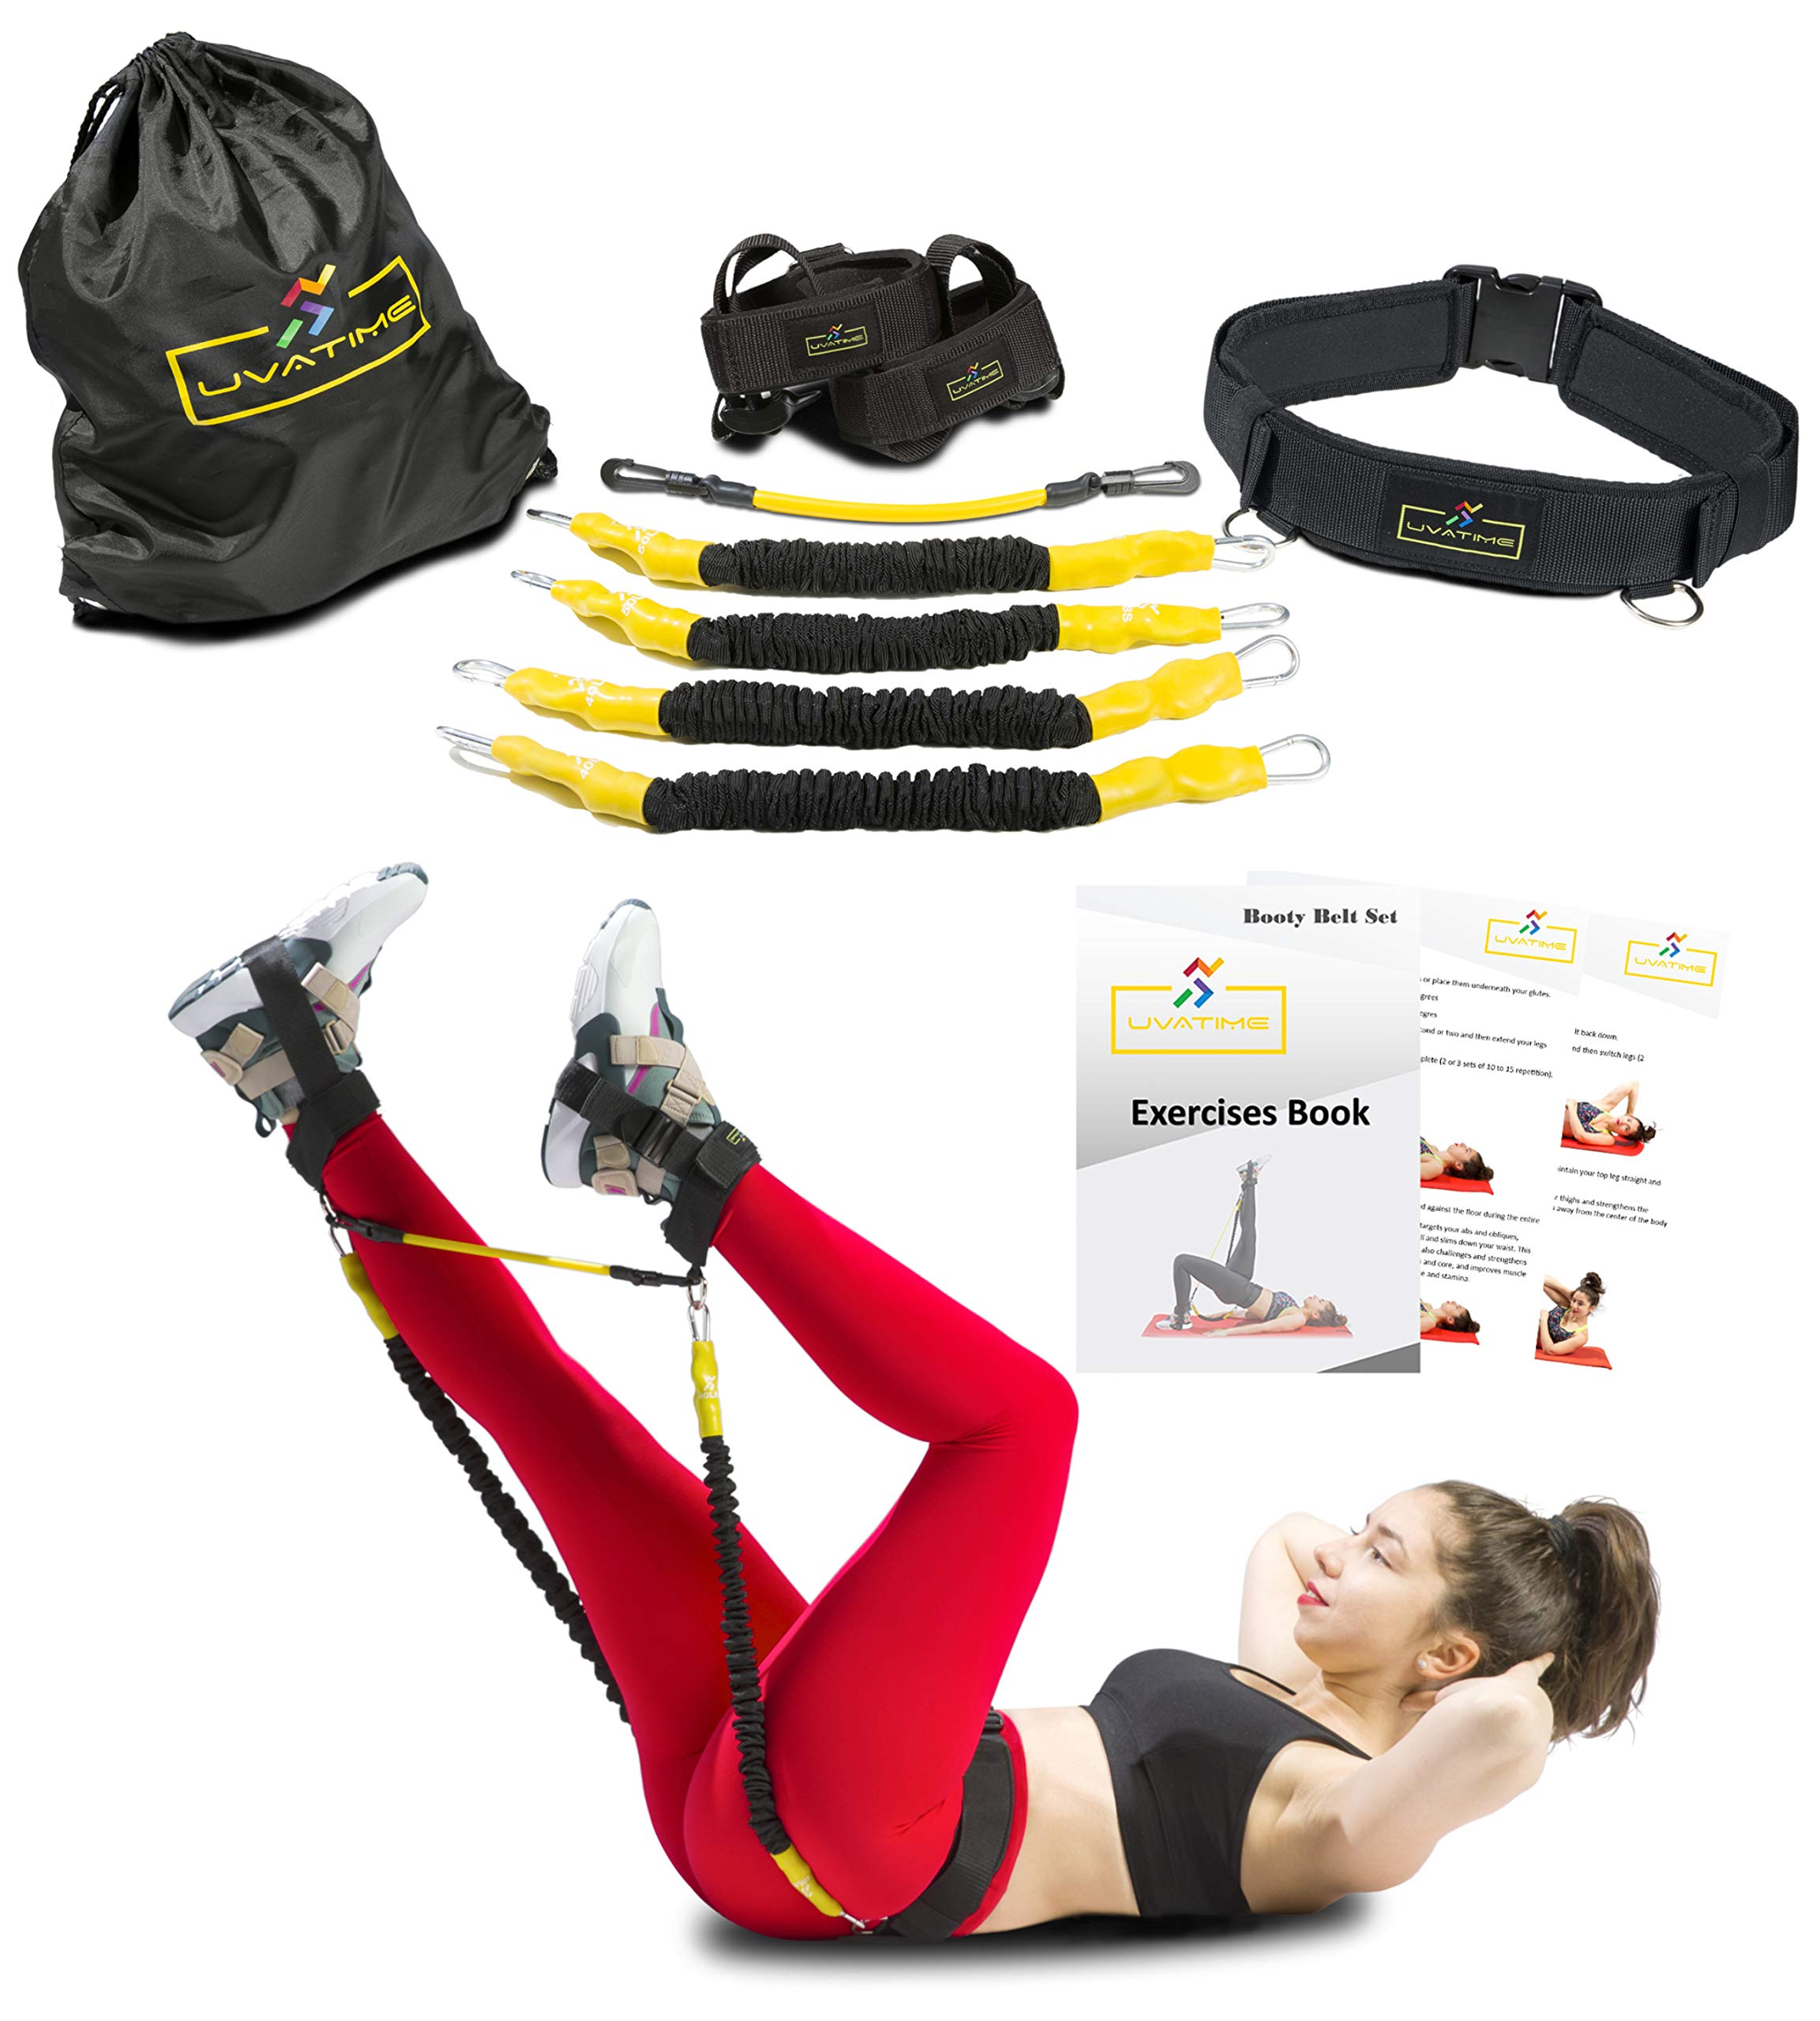 UVATIME Booty Belt with Resistance Bands for Butt and Legs Workout | Great for Abs Exercises and Jump Trainer | 4 Bands Adjustable Resistance Levels | Adjustable Ankle Straps | Backpack